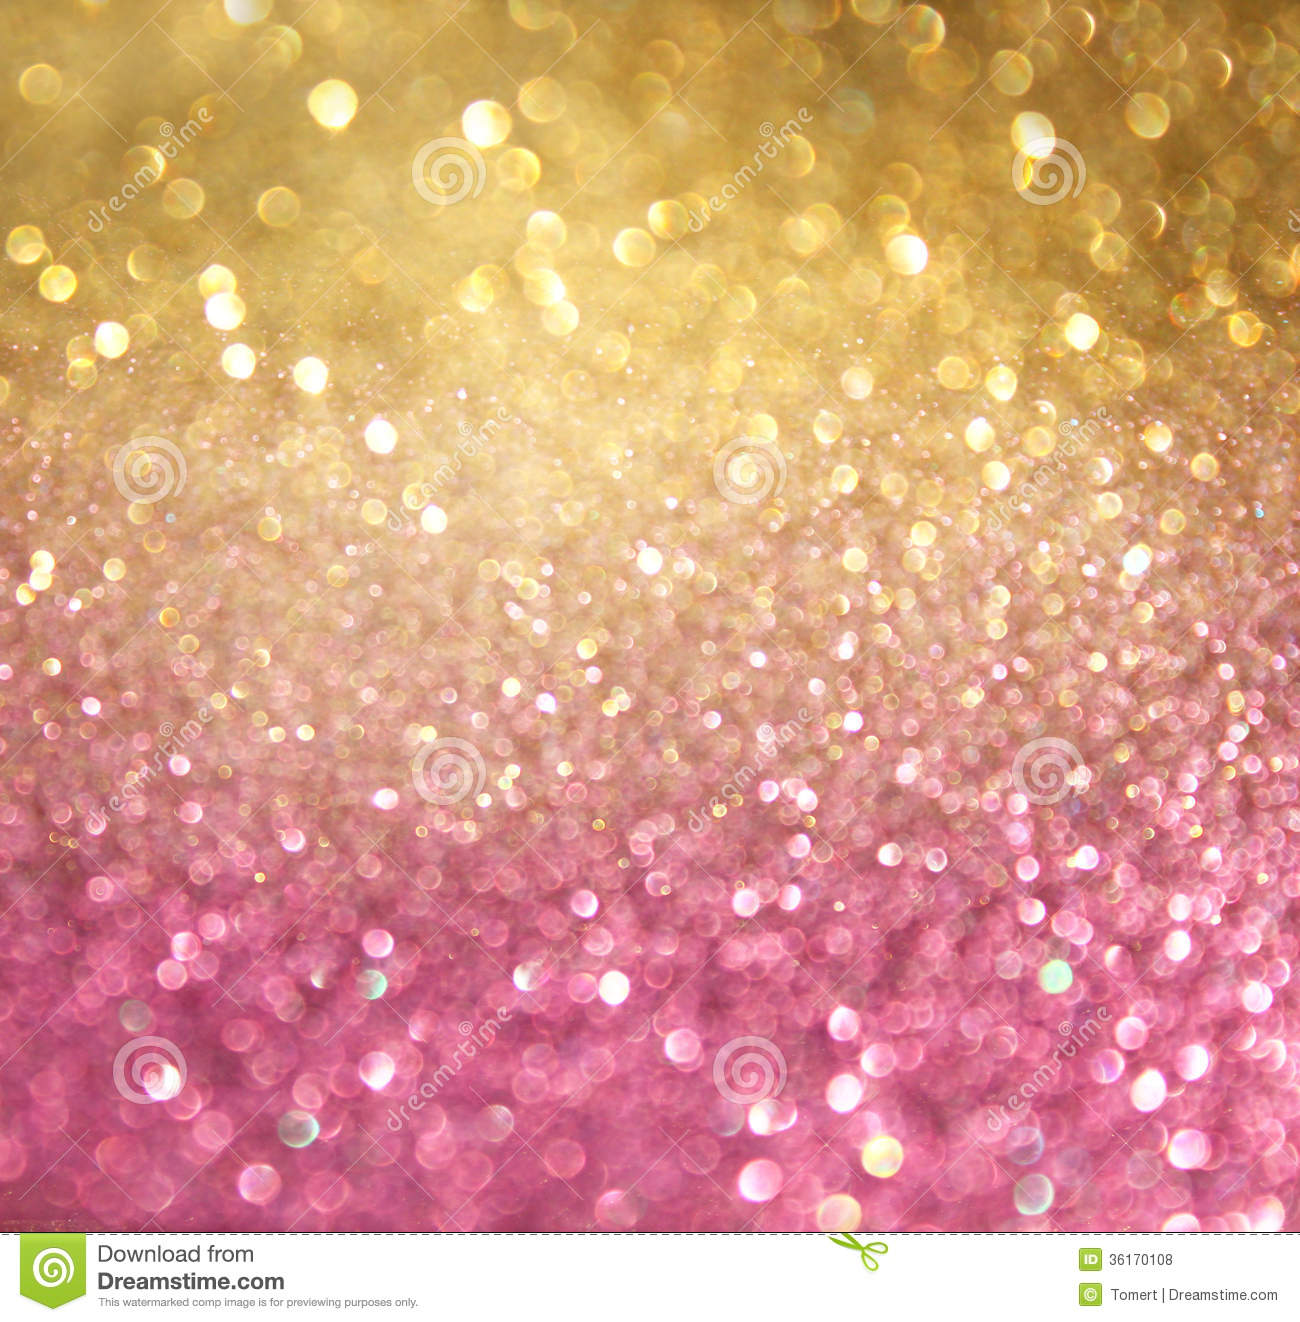 Gold and pink abstract bokeh lights. defocused background